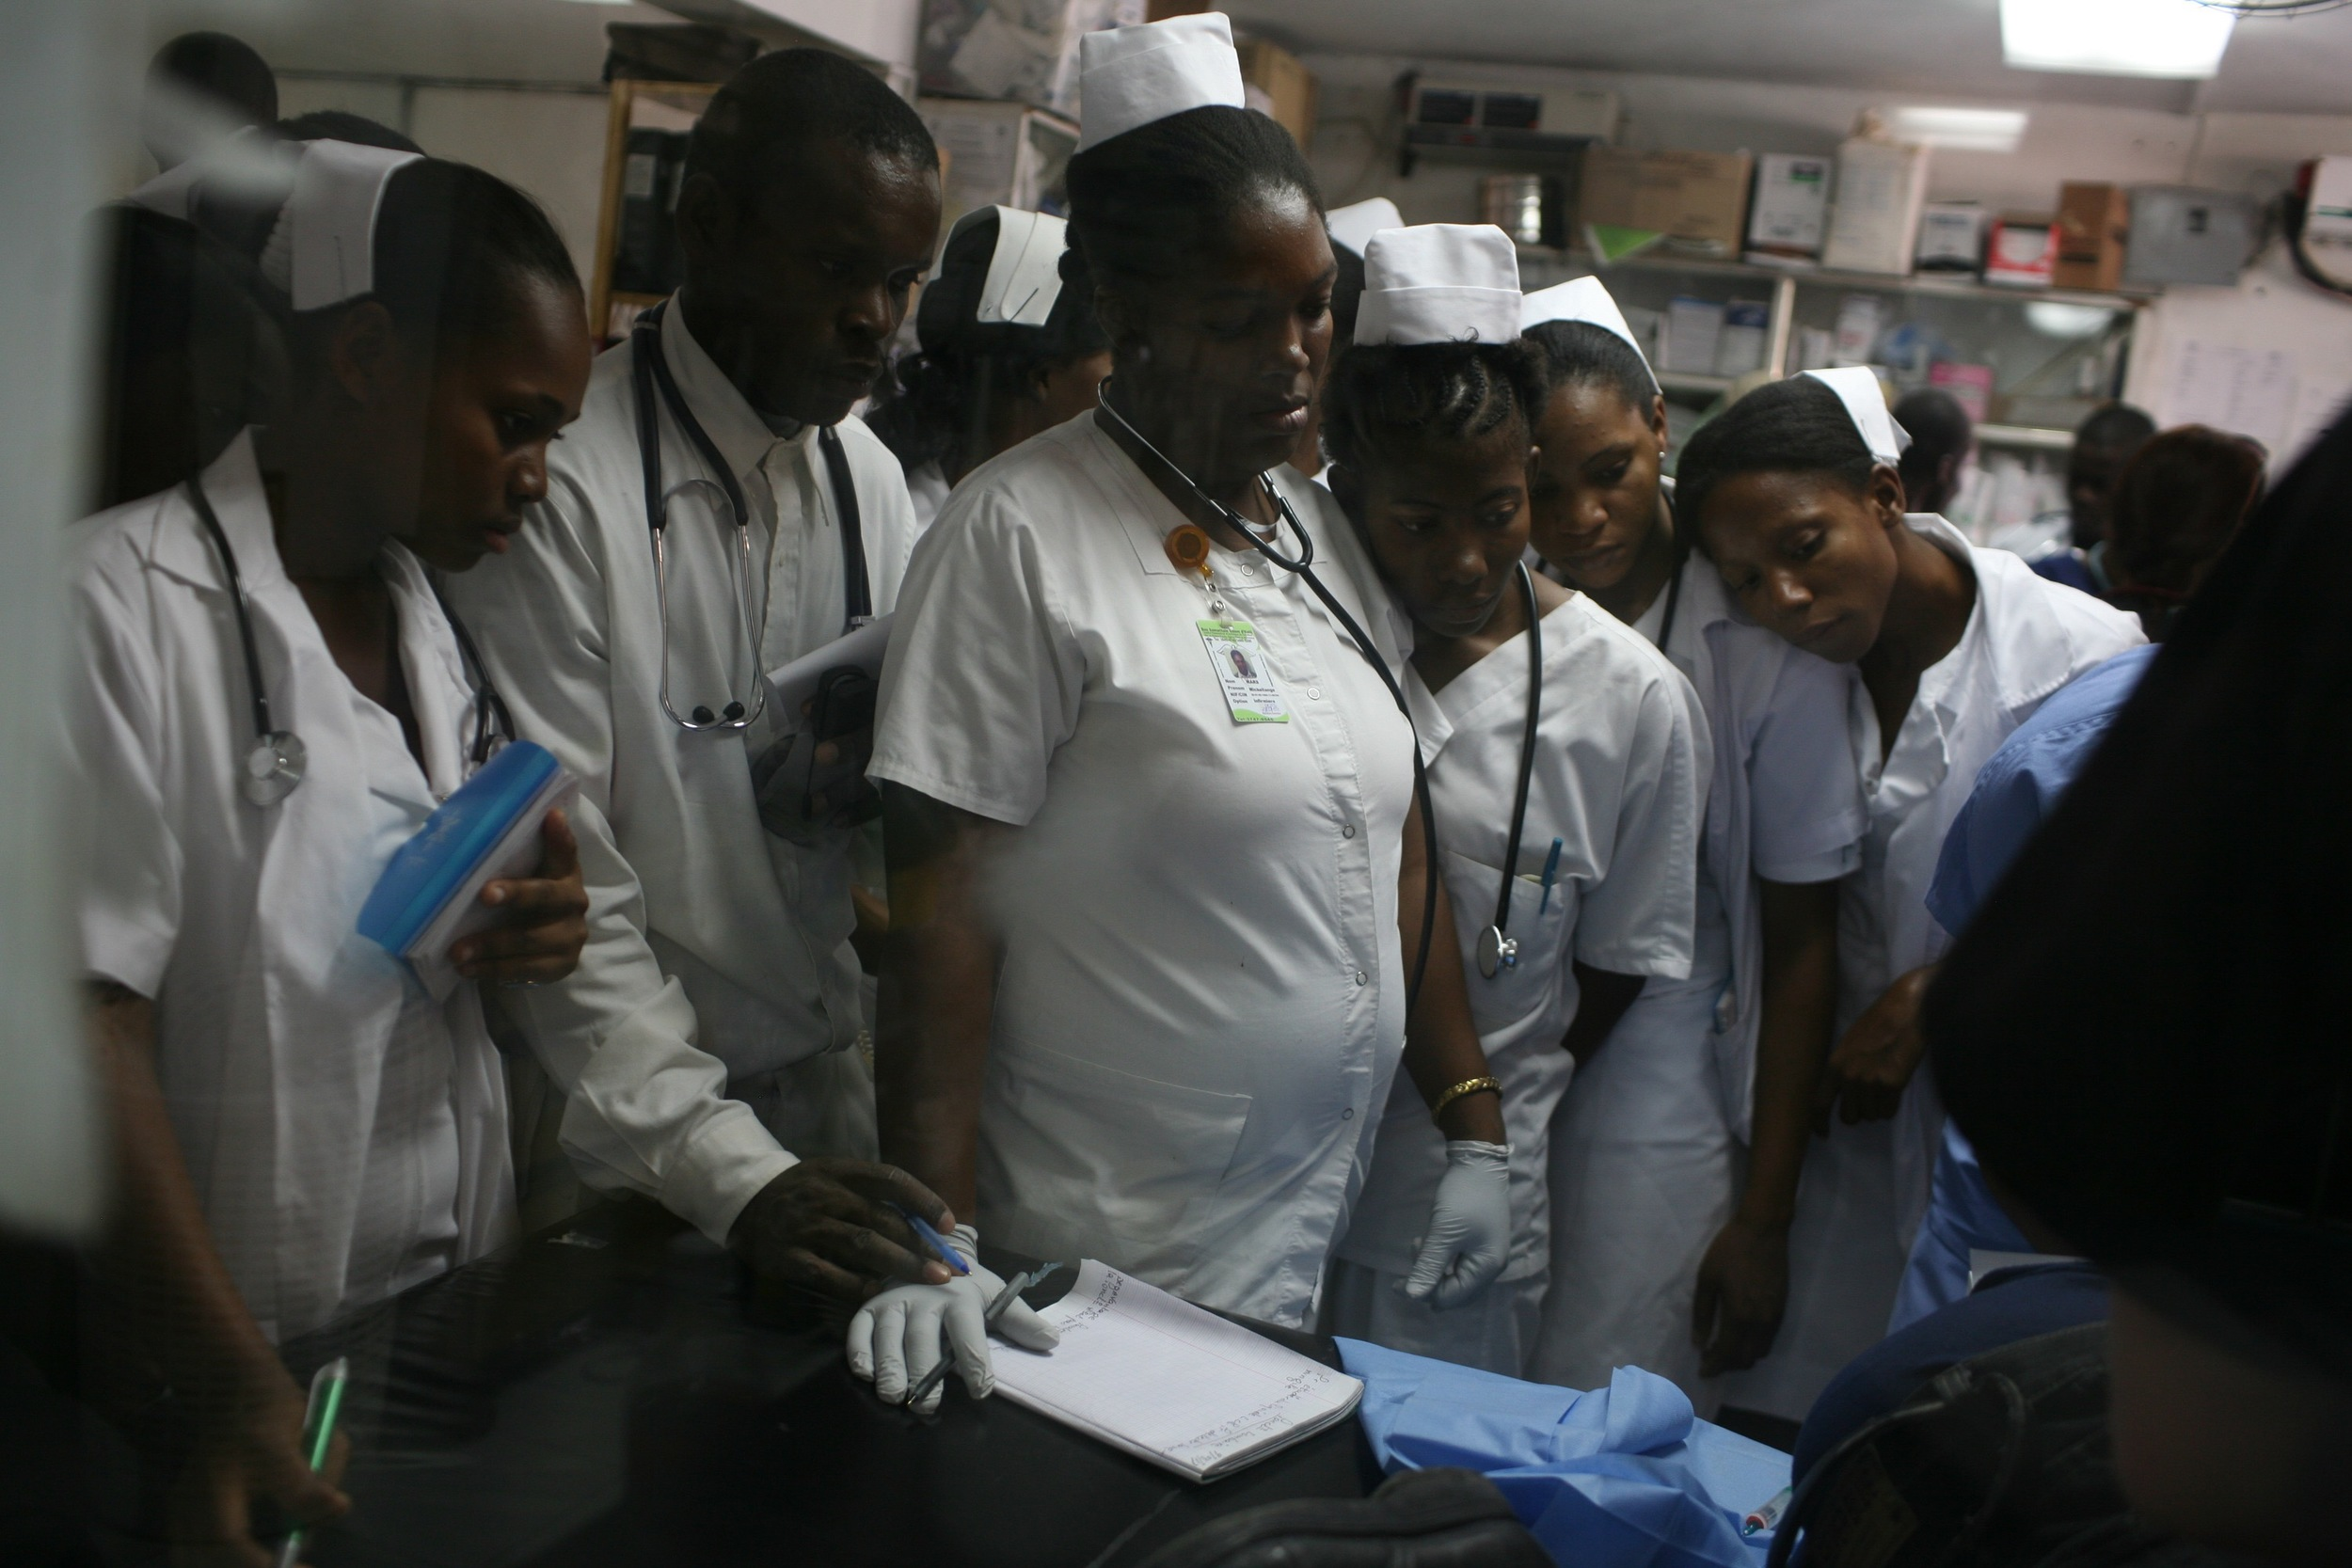 Haitian students eagerly wanting to learn from the new technology